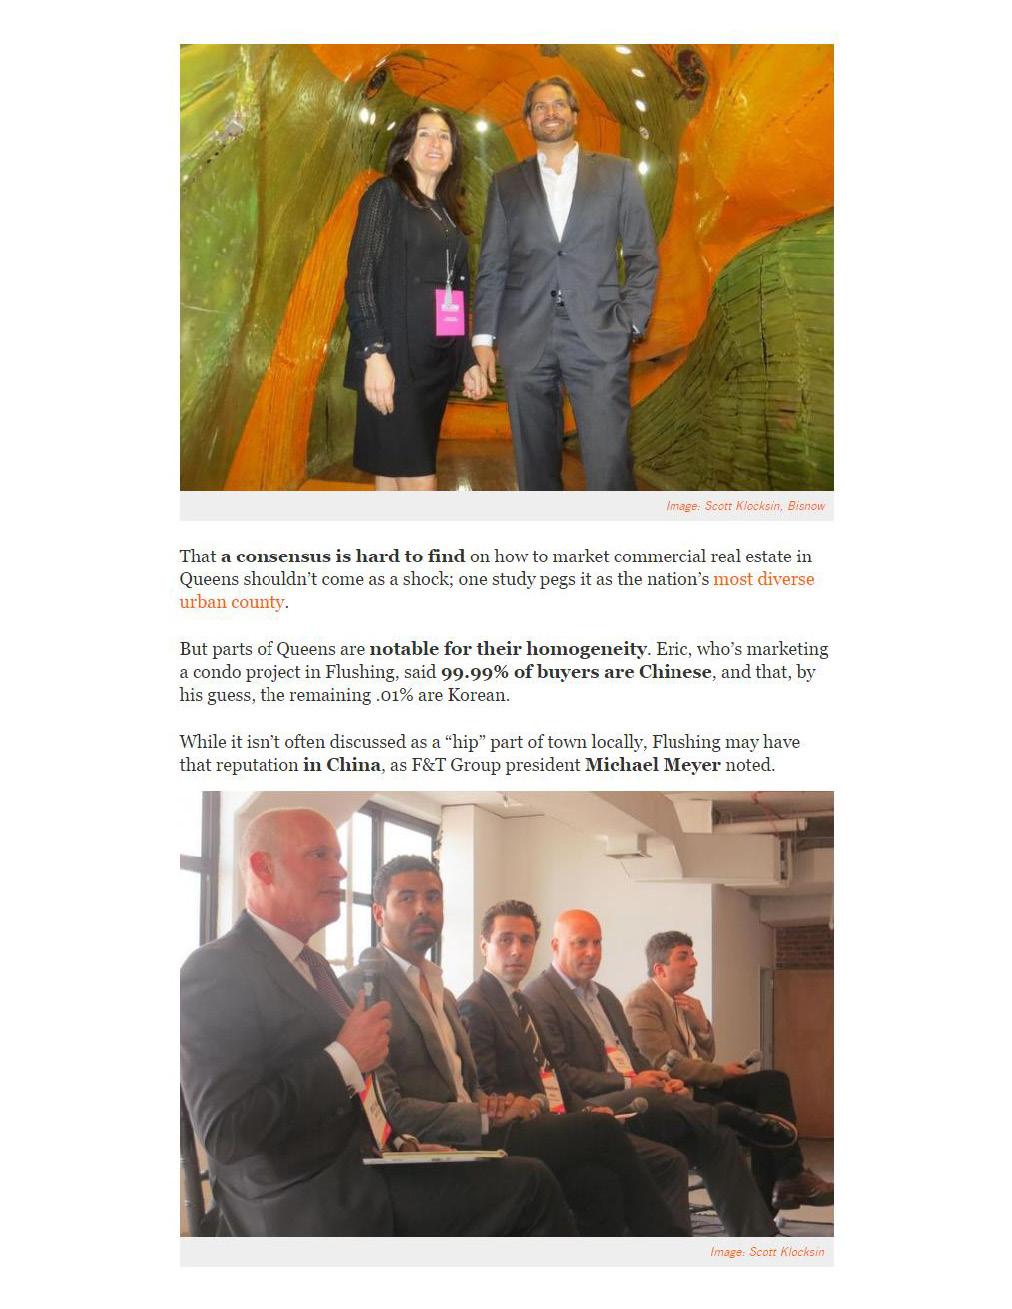 Bisnow - NEW NEIGHBORHOOD NAMES AND THE HUNT FOR AUTHENTICITY IN QUEENS ... (1)_Page_3